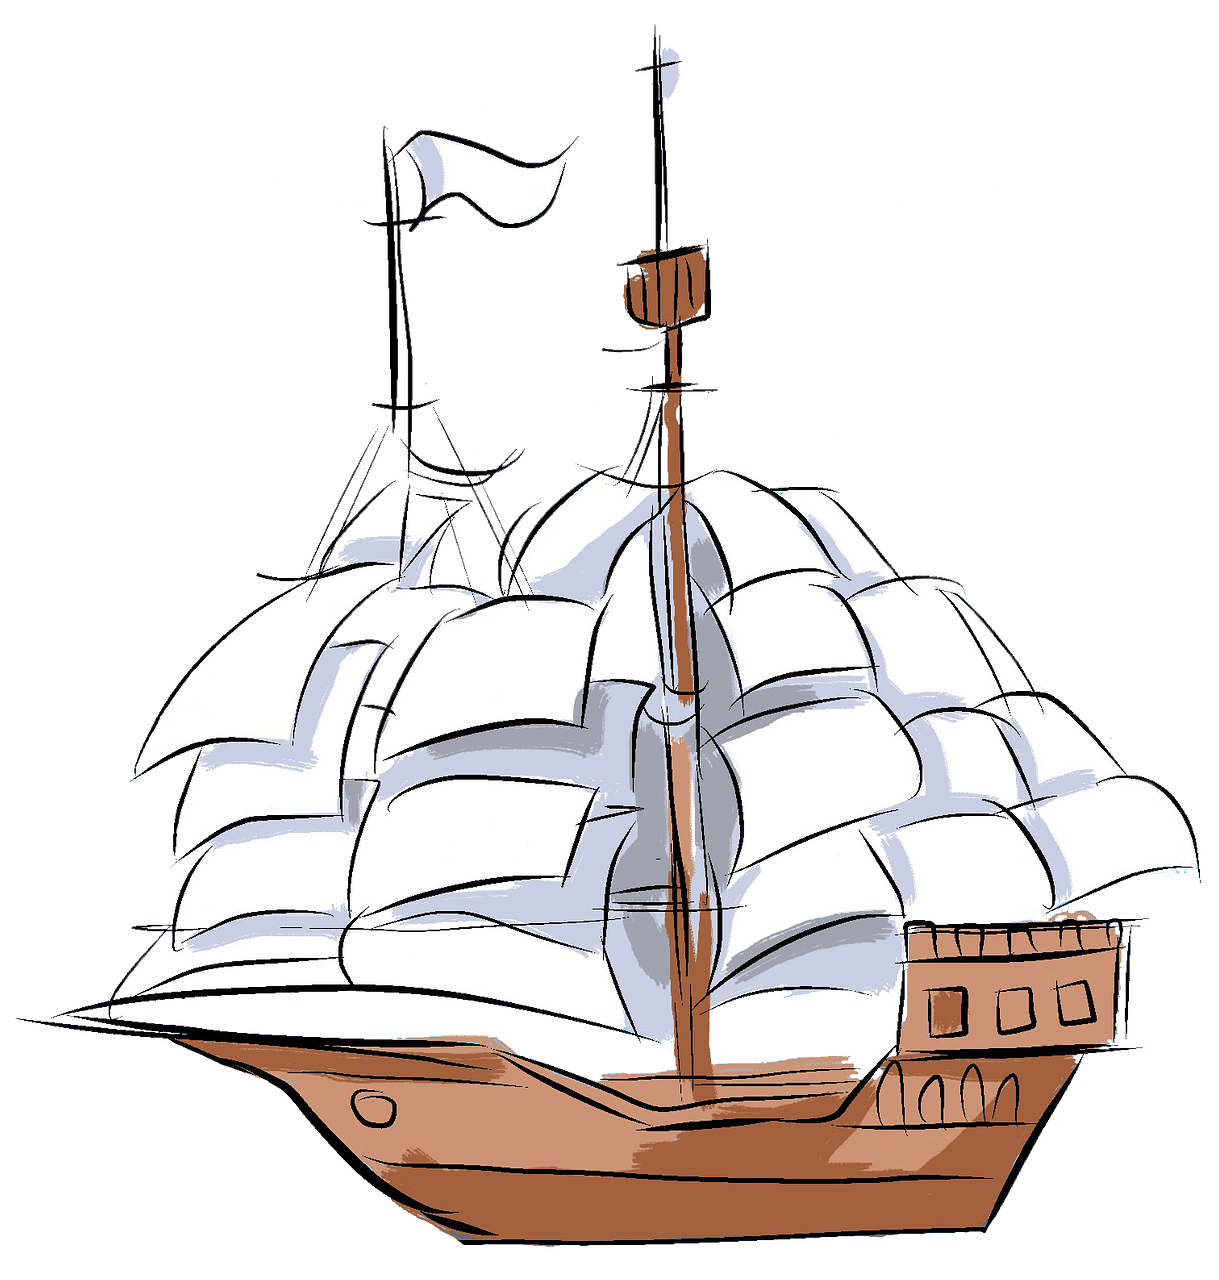 Sailing boat clipart. Free download..